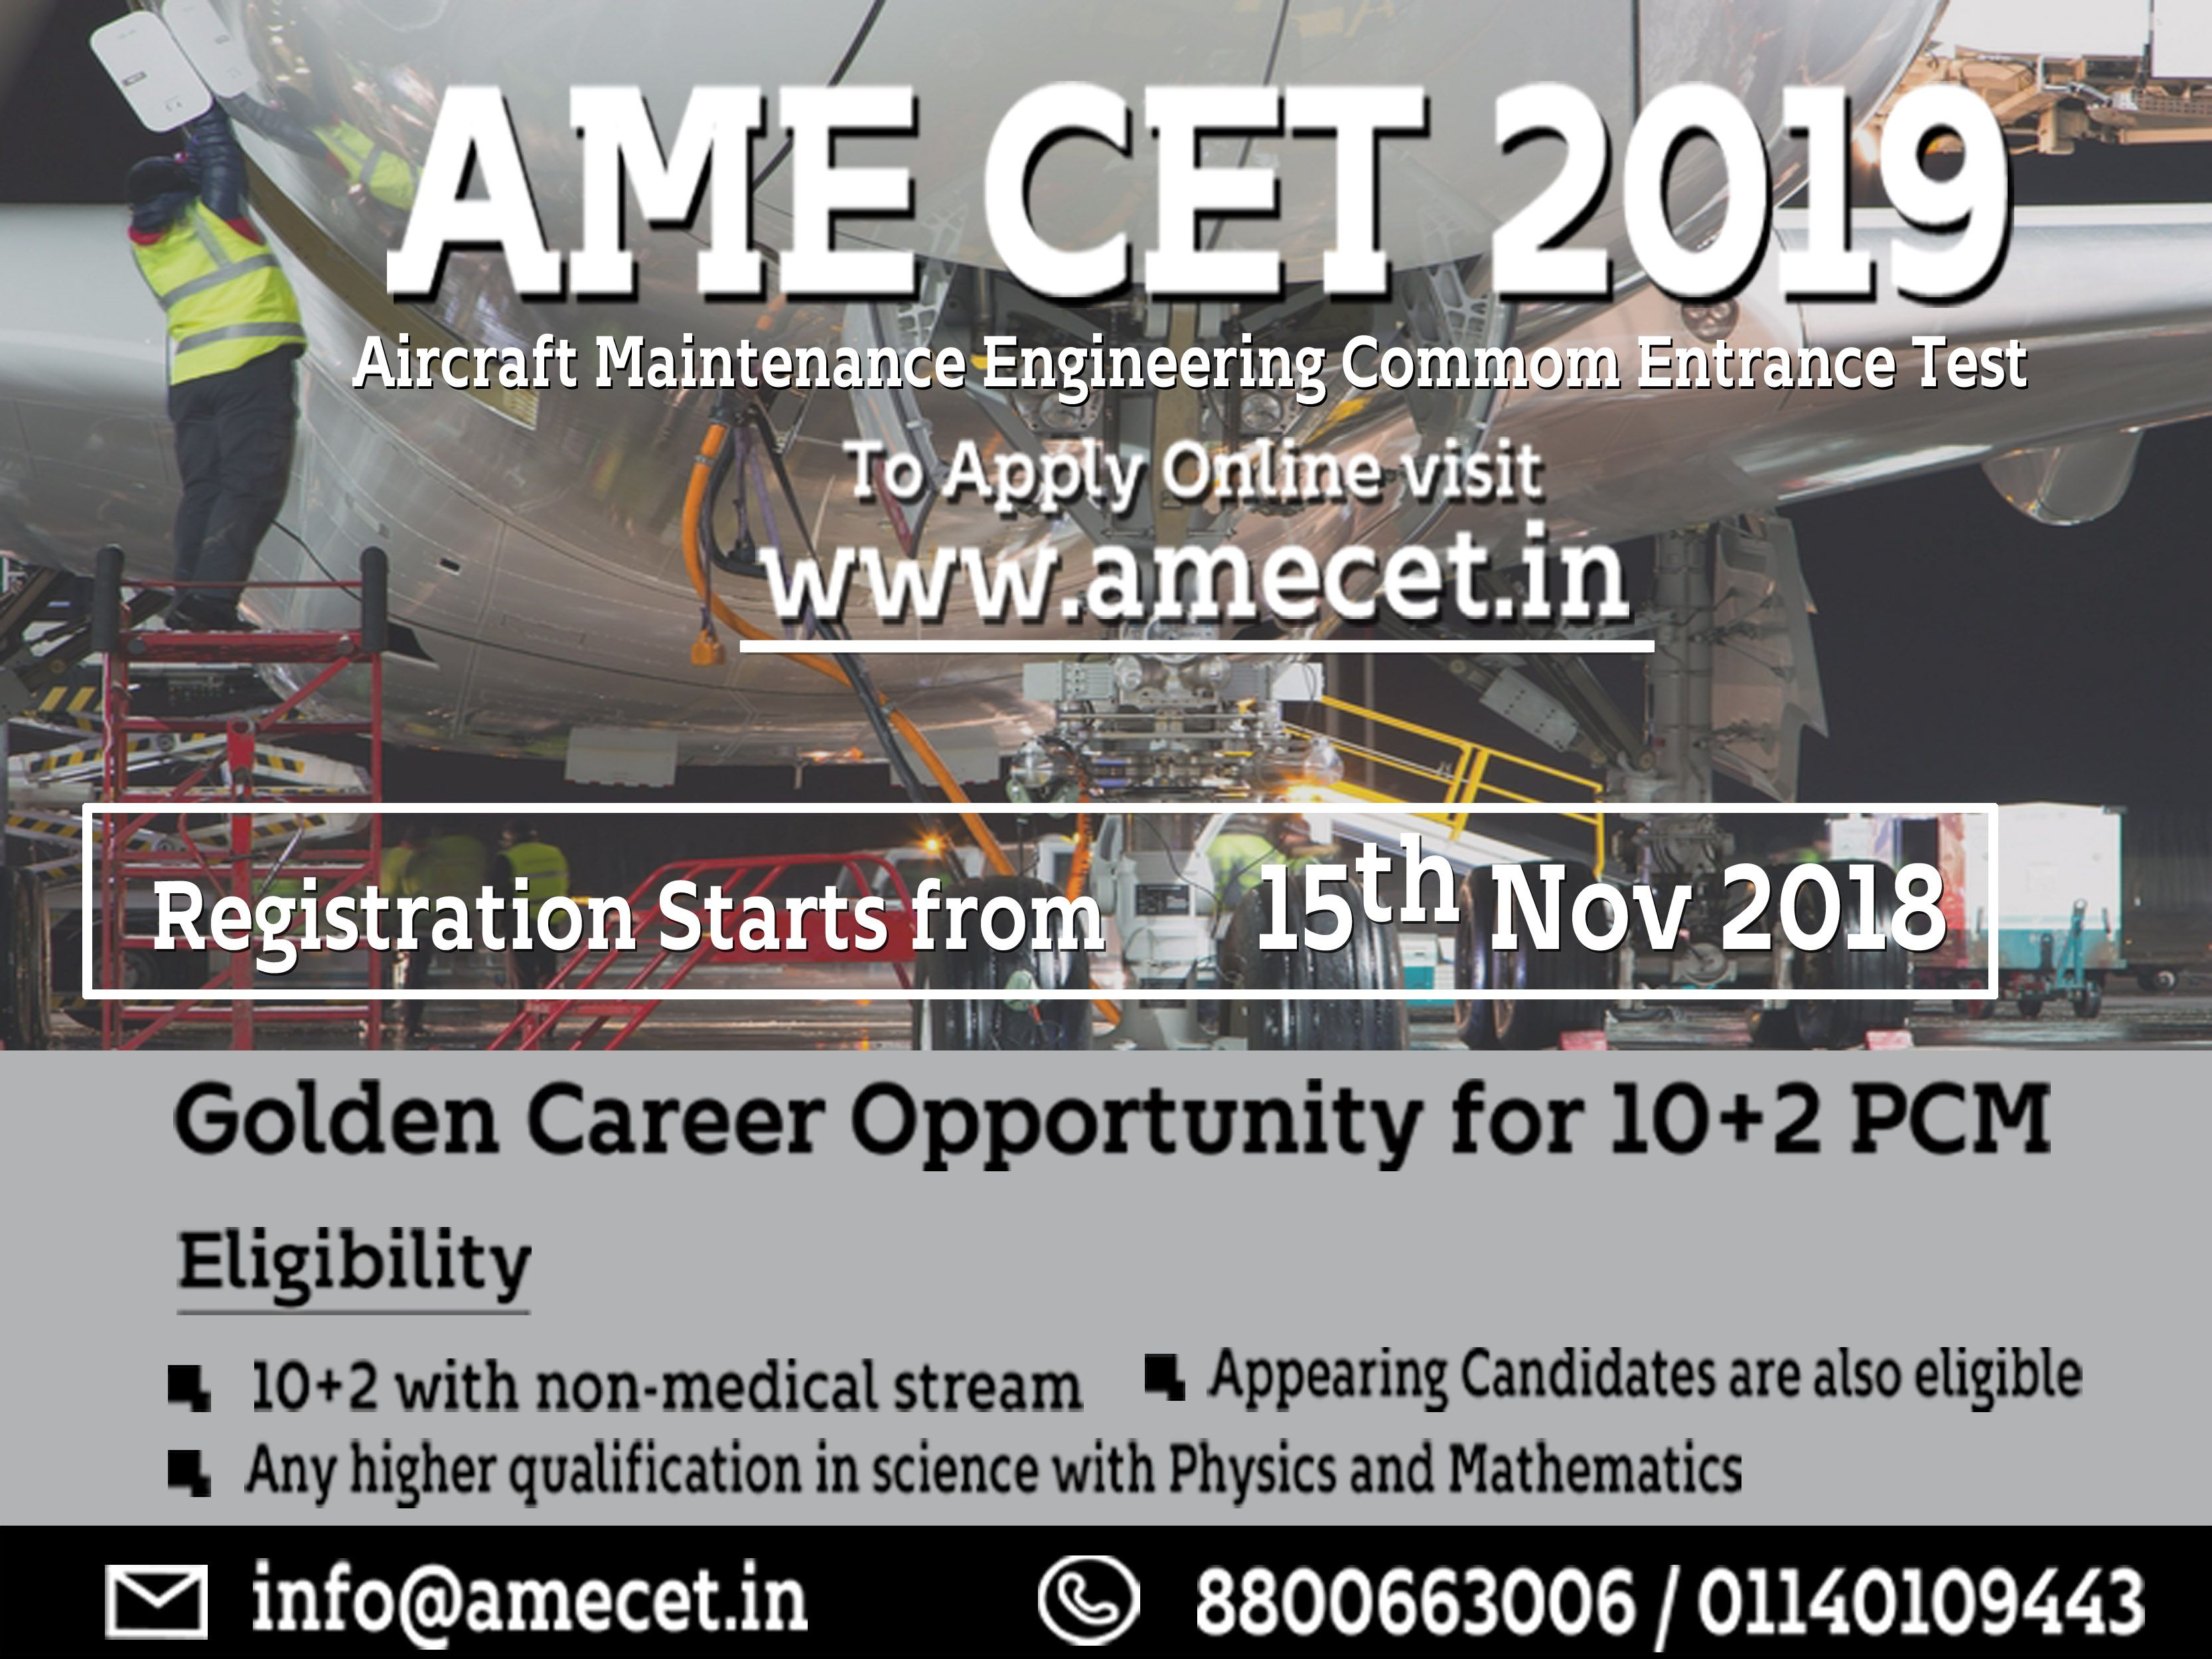 Ame Cet Previous Question Papers Are Revision Purpose And Helpful In Attaining Good Aircraft Maintenance Engineer Physics And Mathematics Aircraft Maintenance